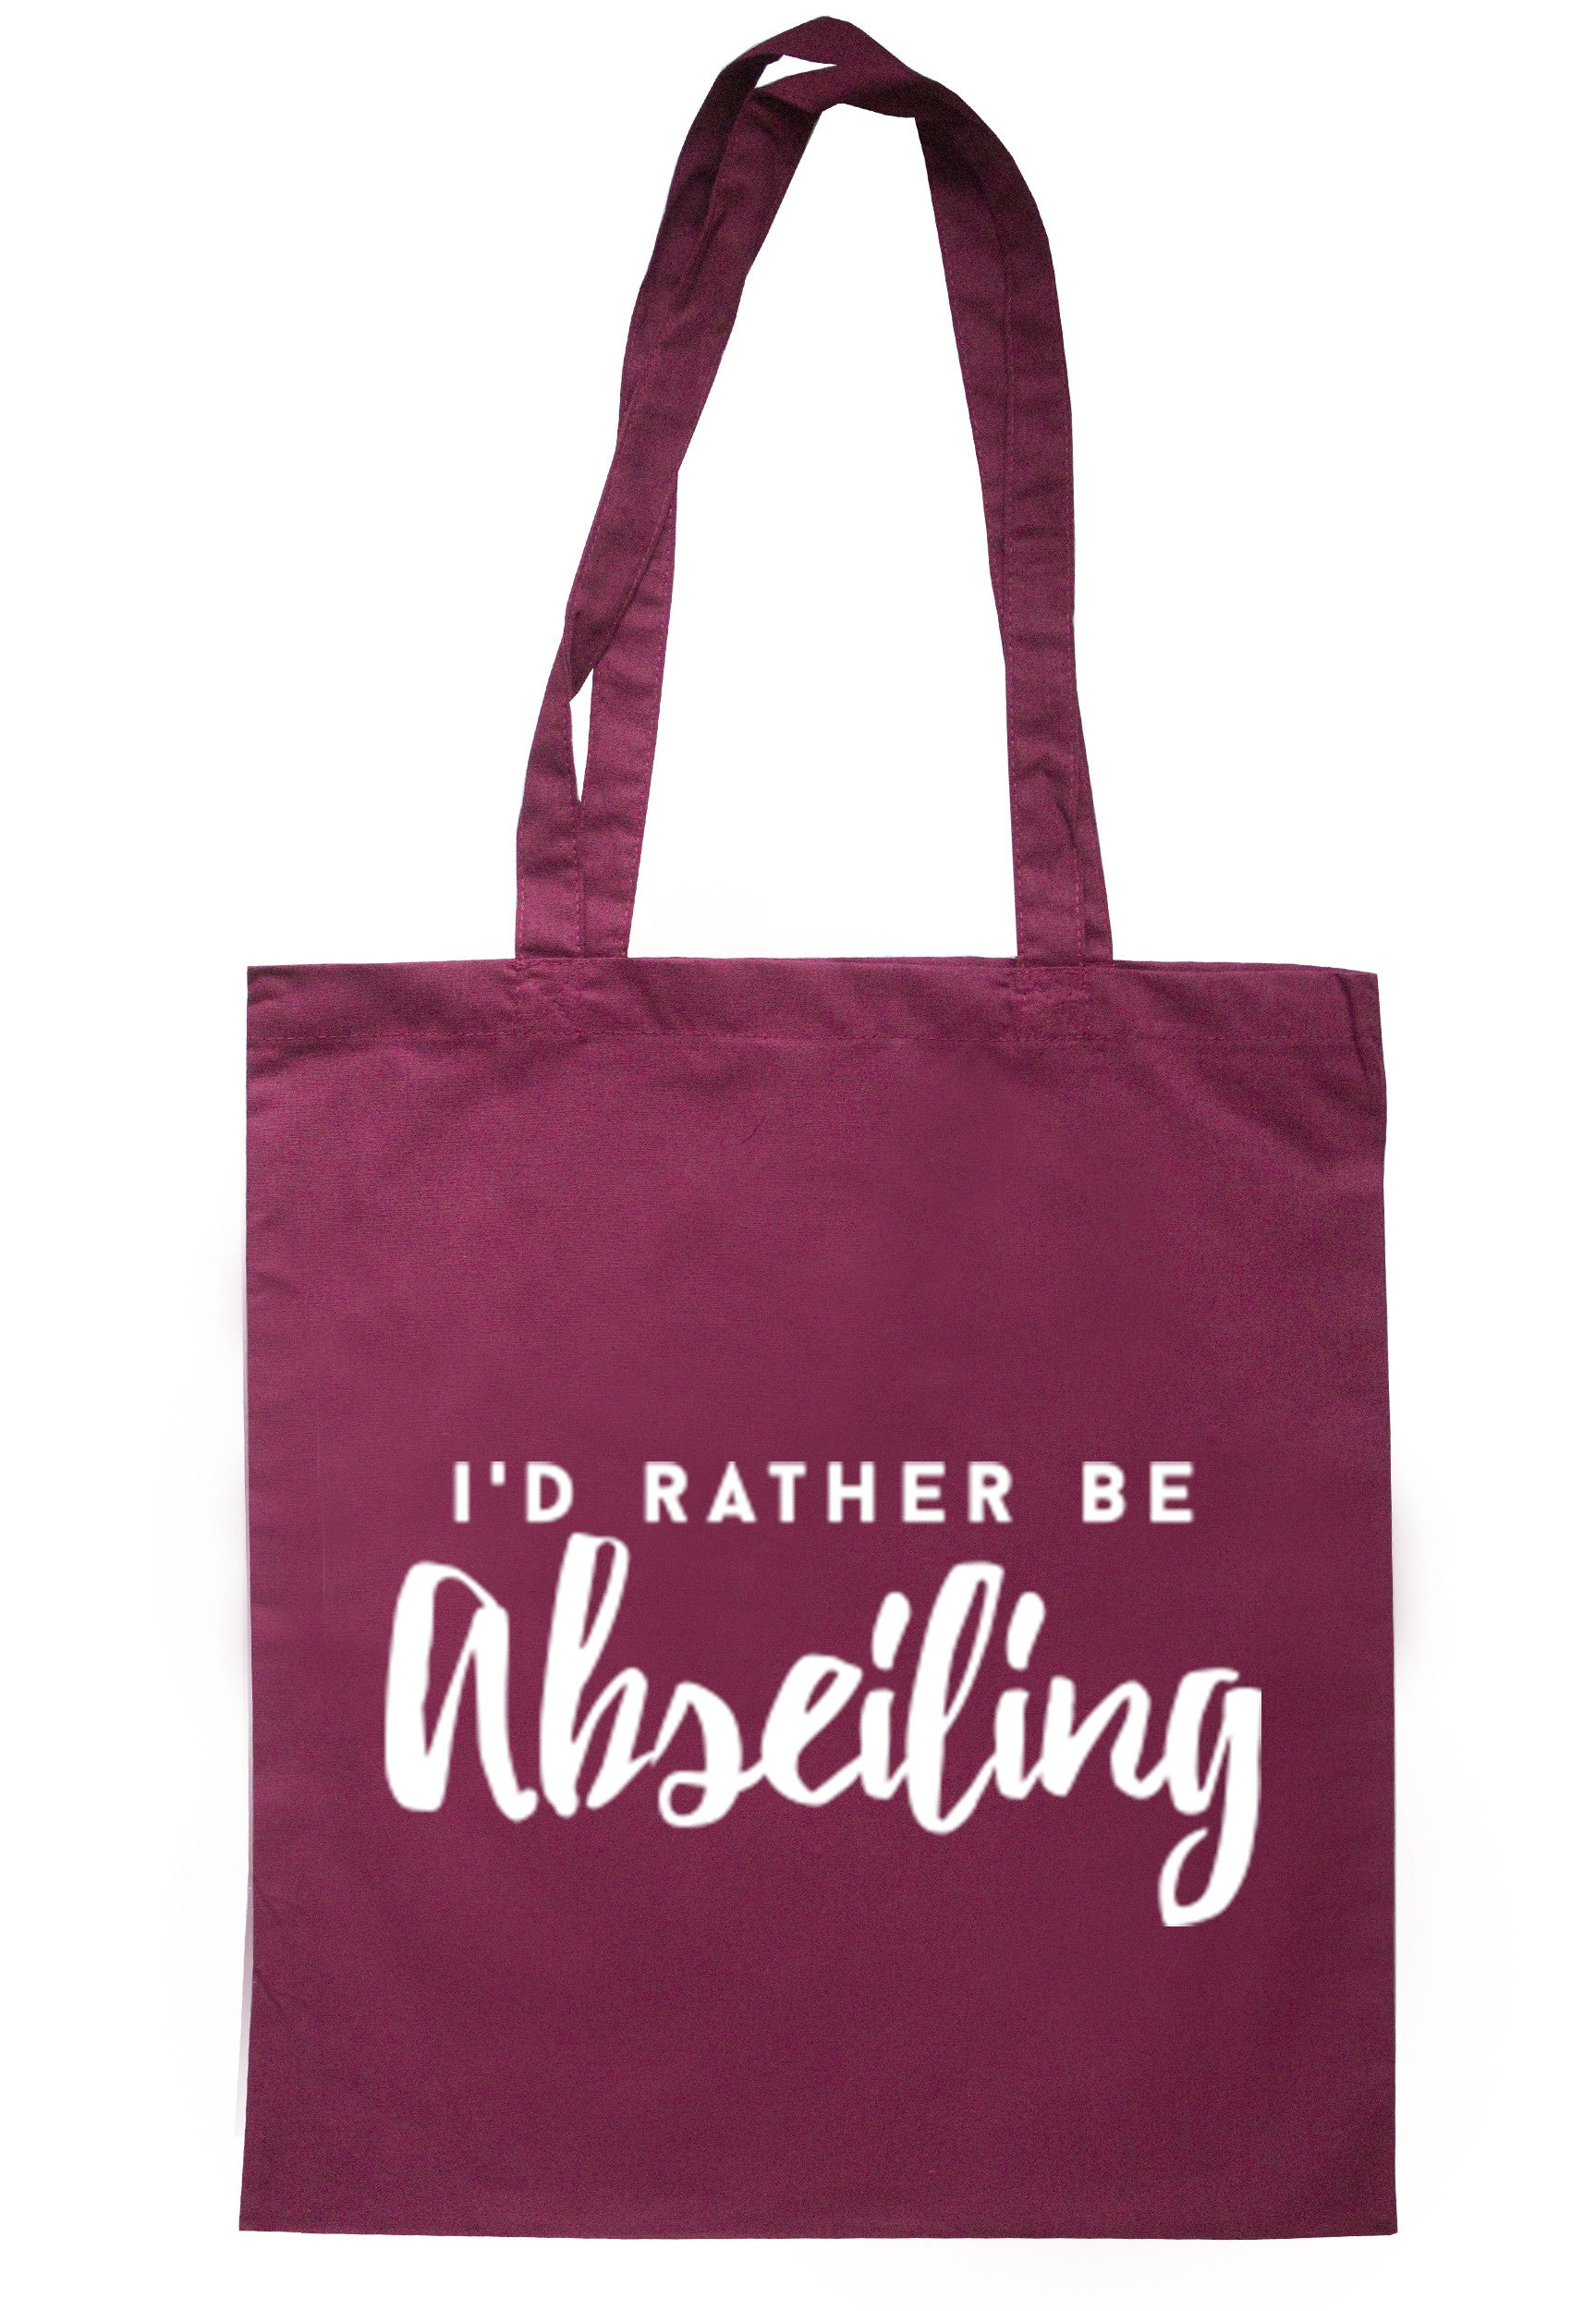 I'd Rather Be Abseiling Tote Bag TB0155 - Illustrated Identity Ltd.